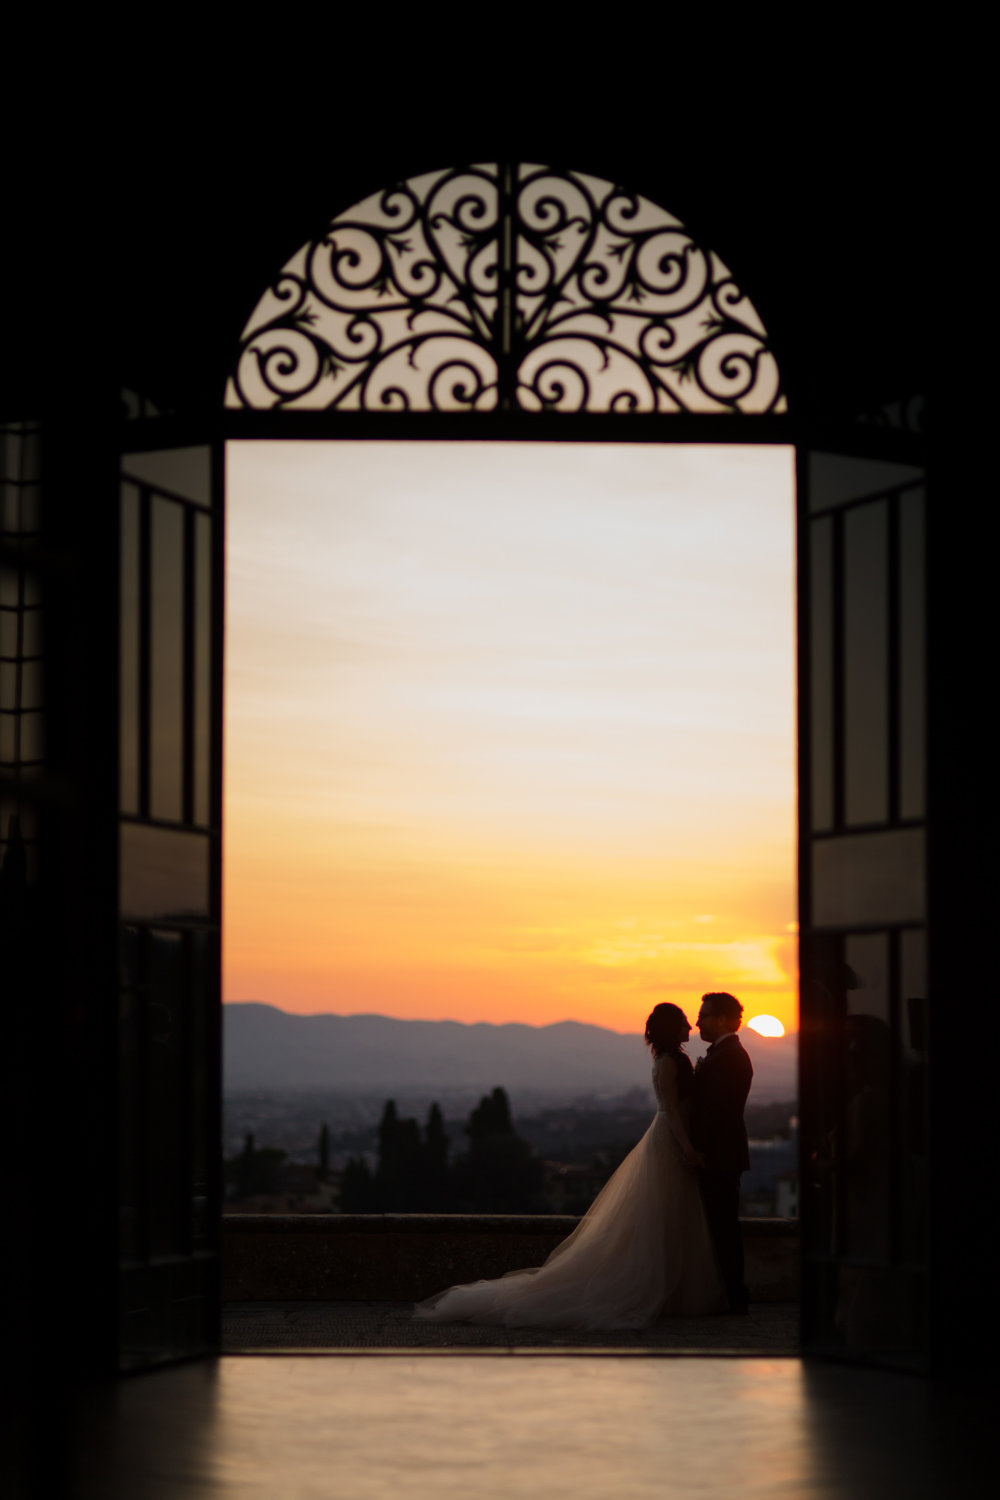 villa-gamberaia-florence-italy-destination-wedding-1-2.jpg